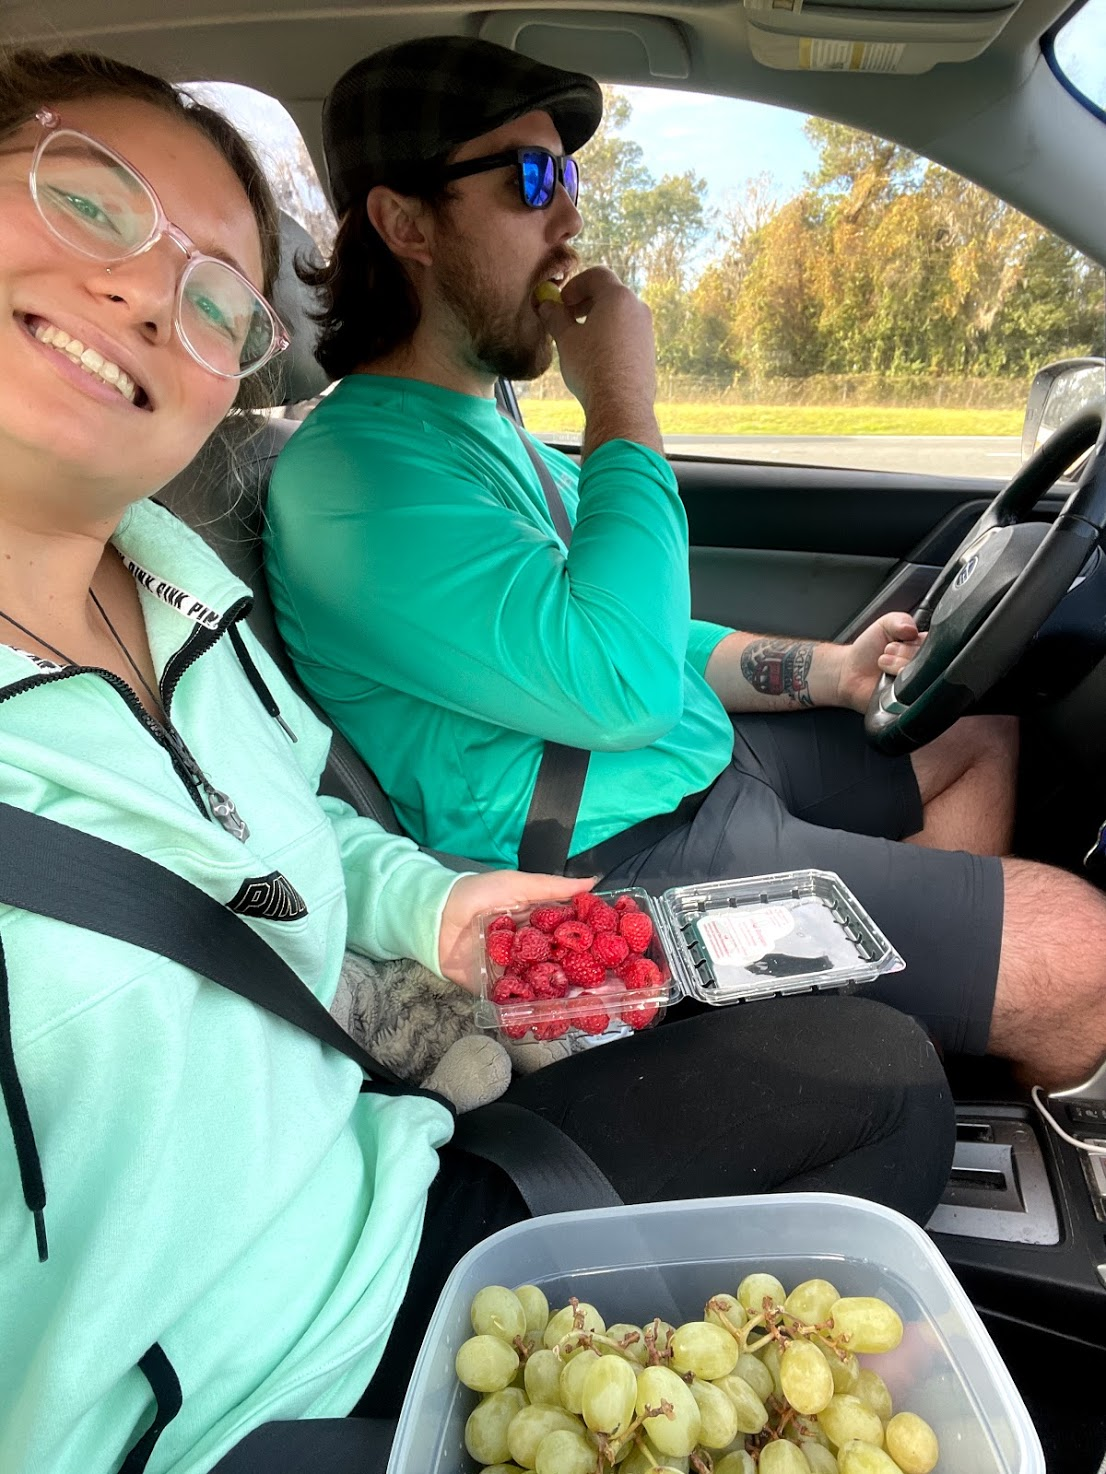 Eating our car snacks for the road trip to save money on travel